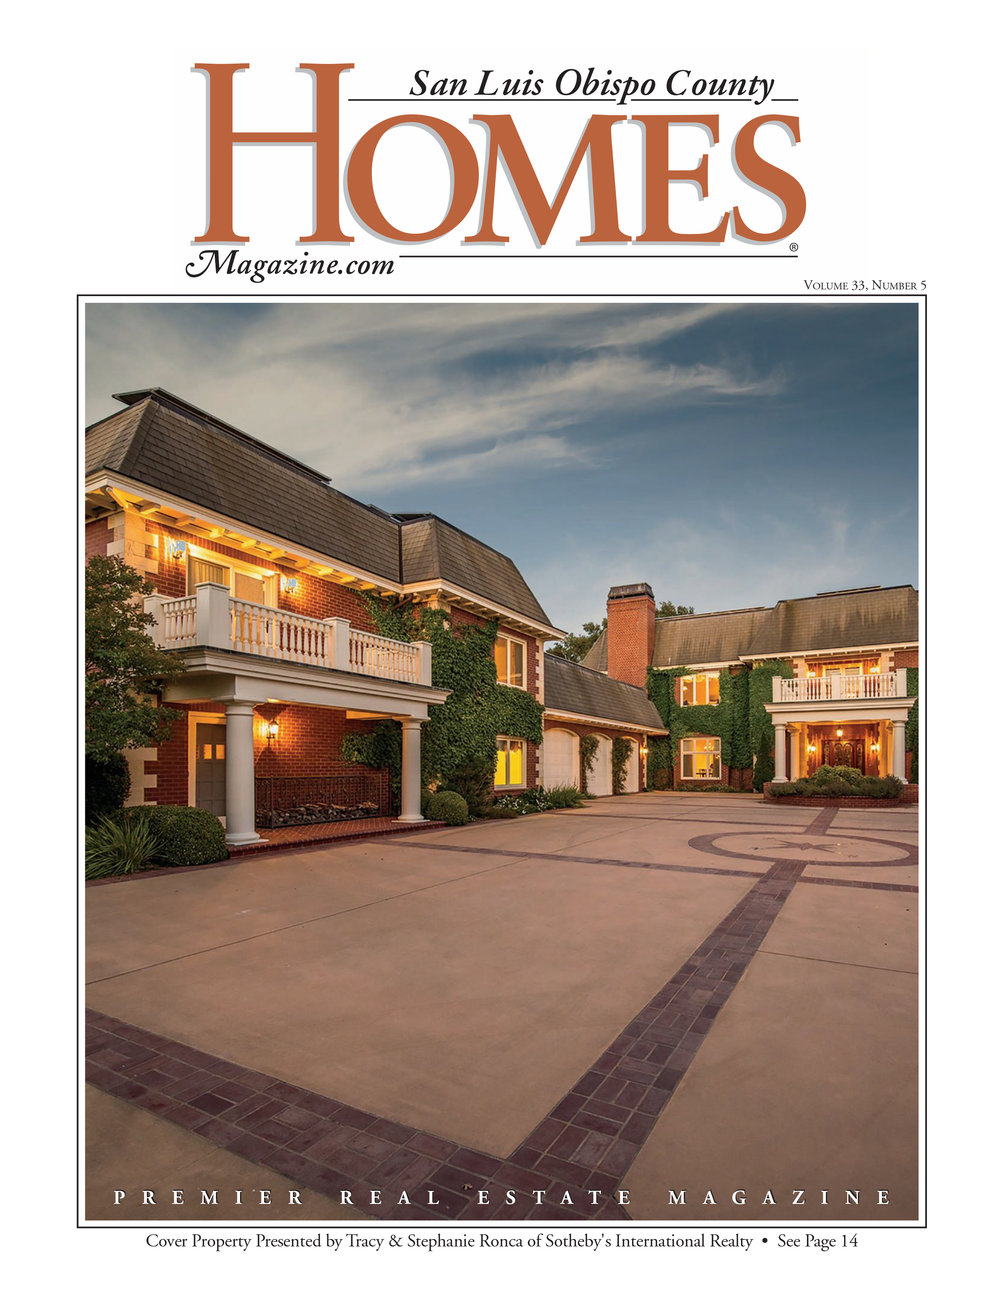 Homes magazine cover